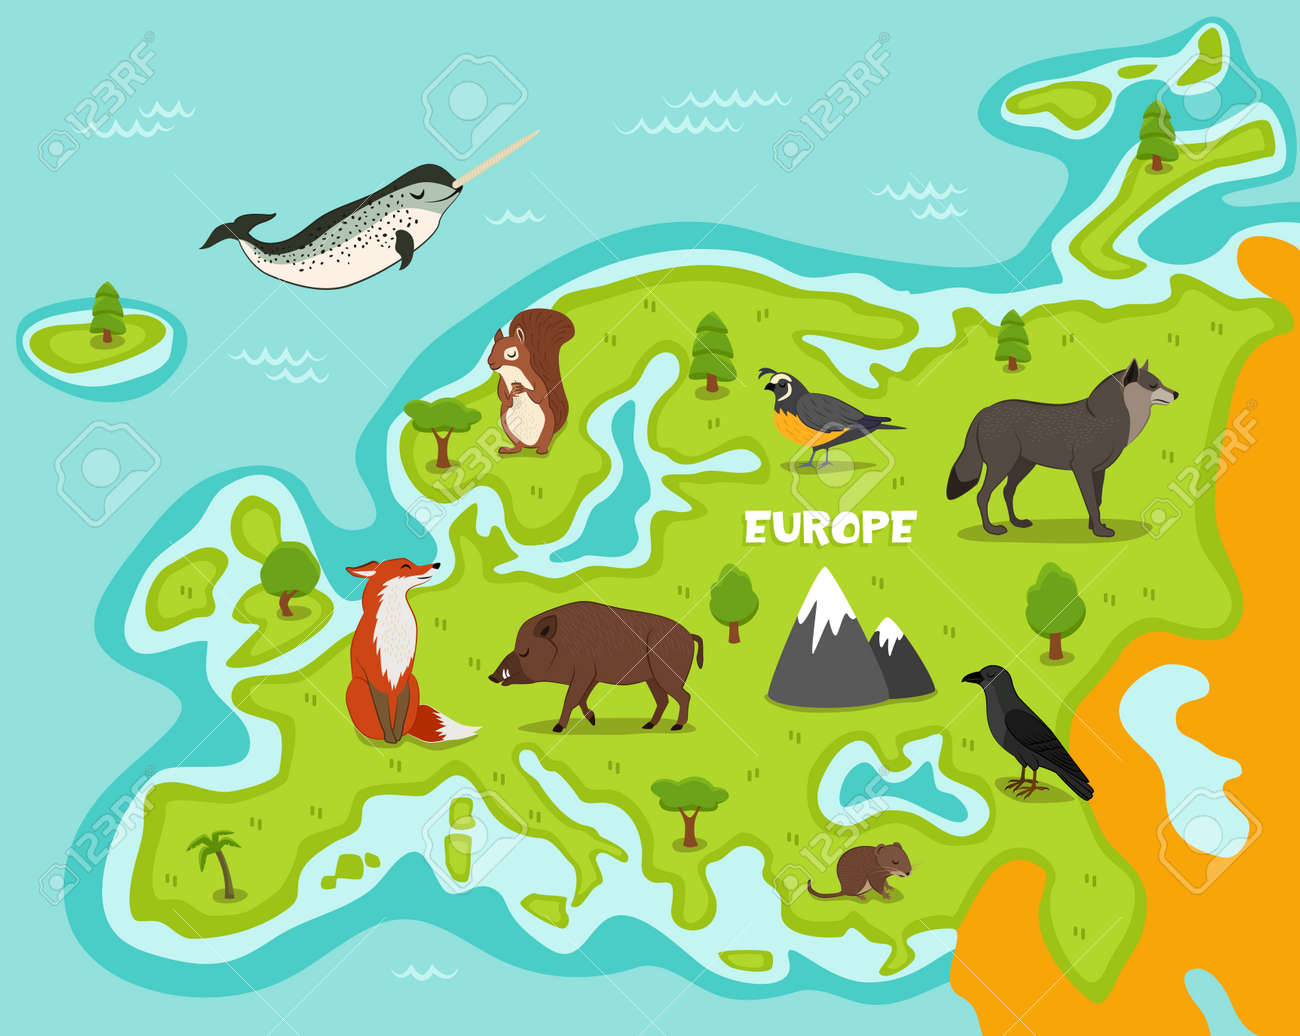 European Map With Wildlife Animals Vector Illustration Cartoon Flora And Fauna Squirrel Wolf